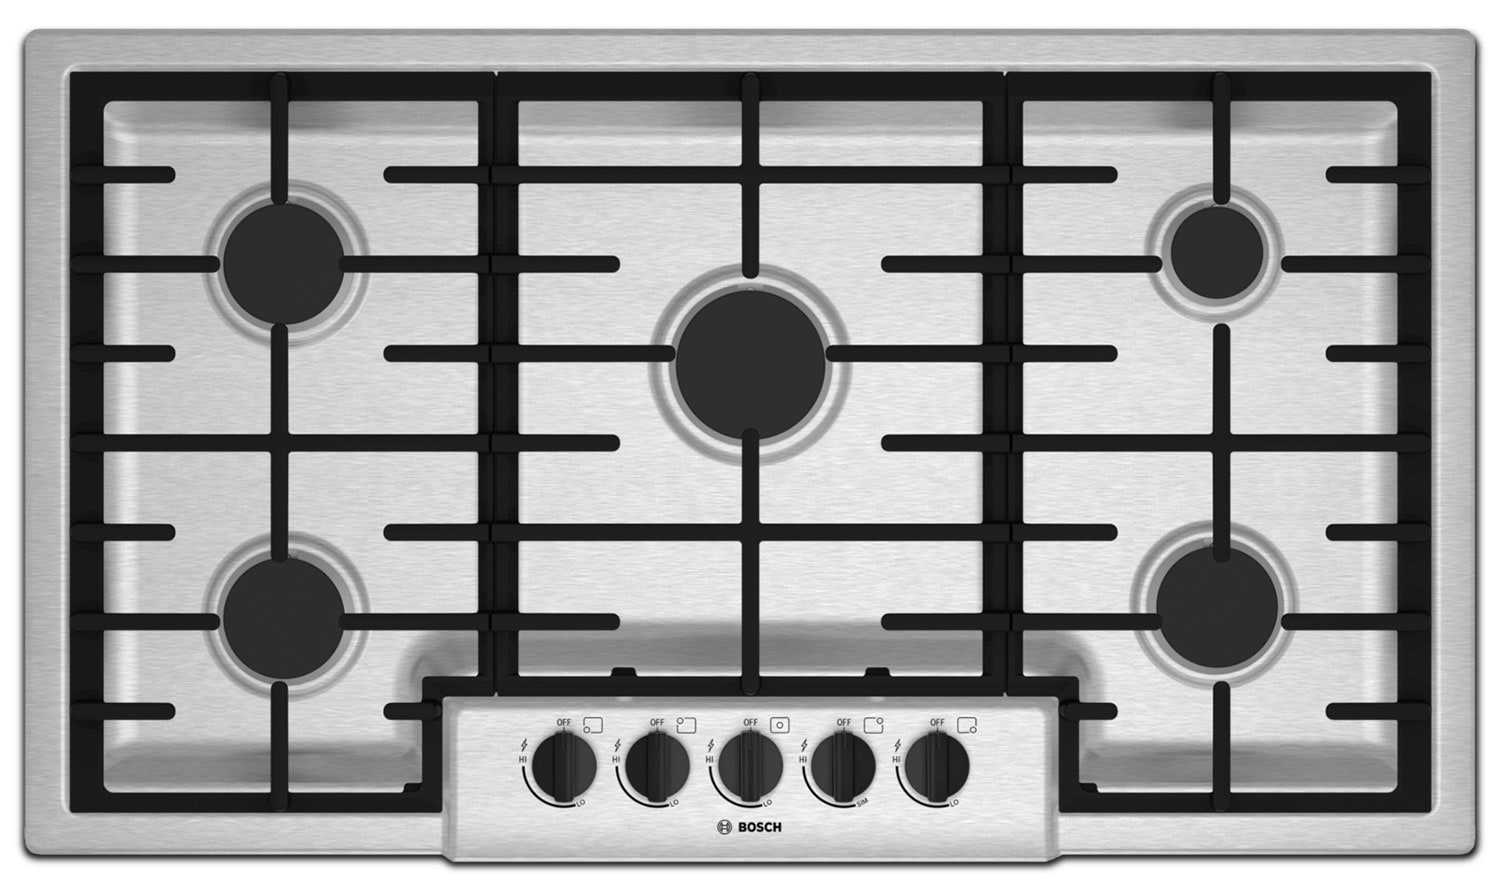 Cooking Products - Bosch Stainless Steel Gas Cooktop - NGM5655UC